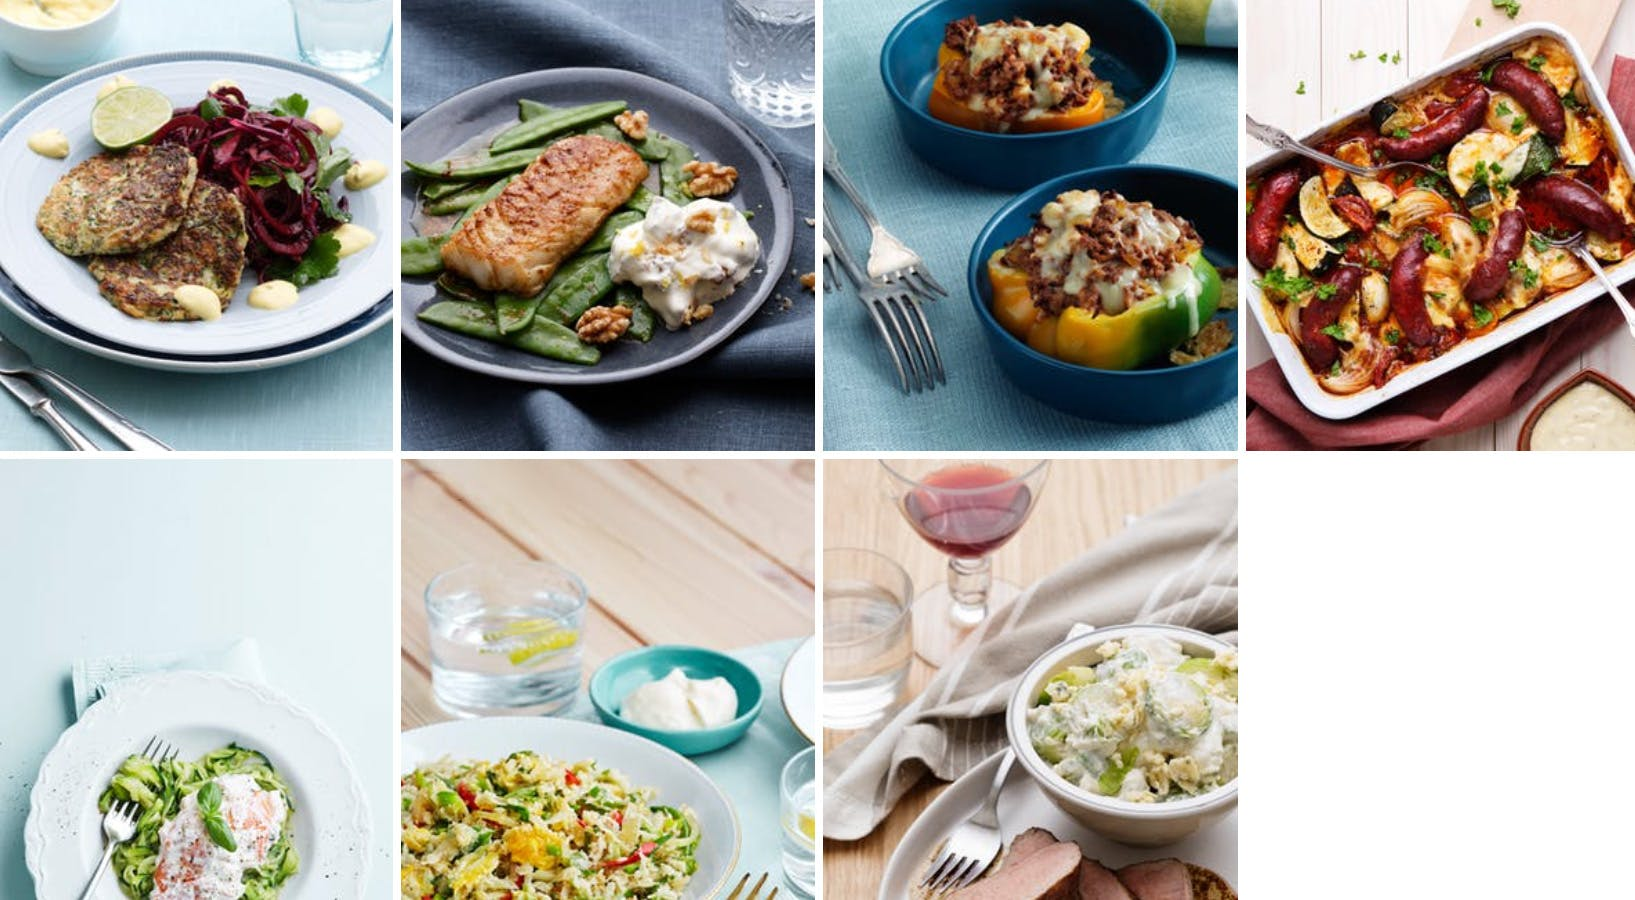 New low-carb meal plan - spring is in the air!